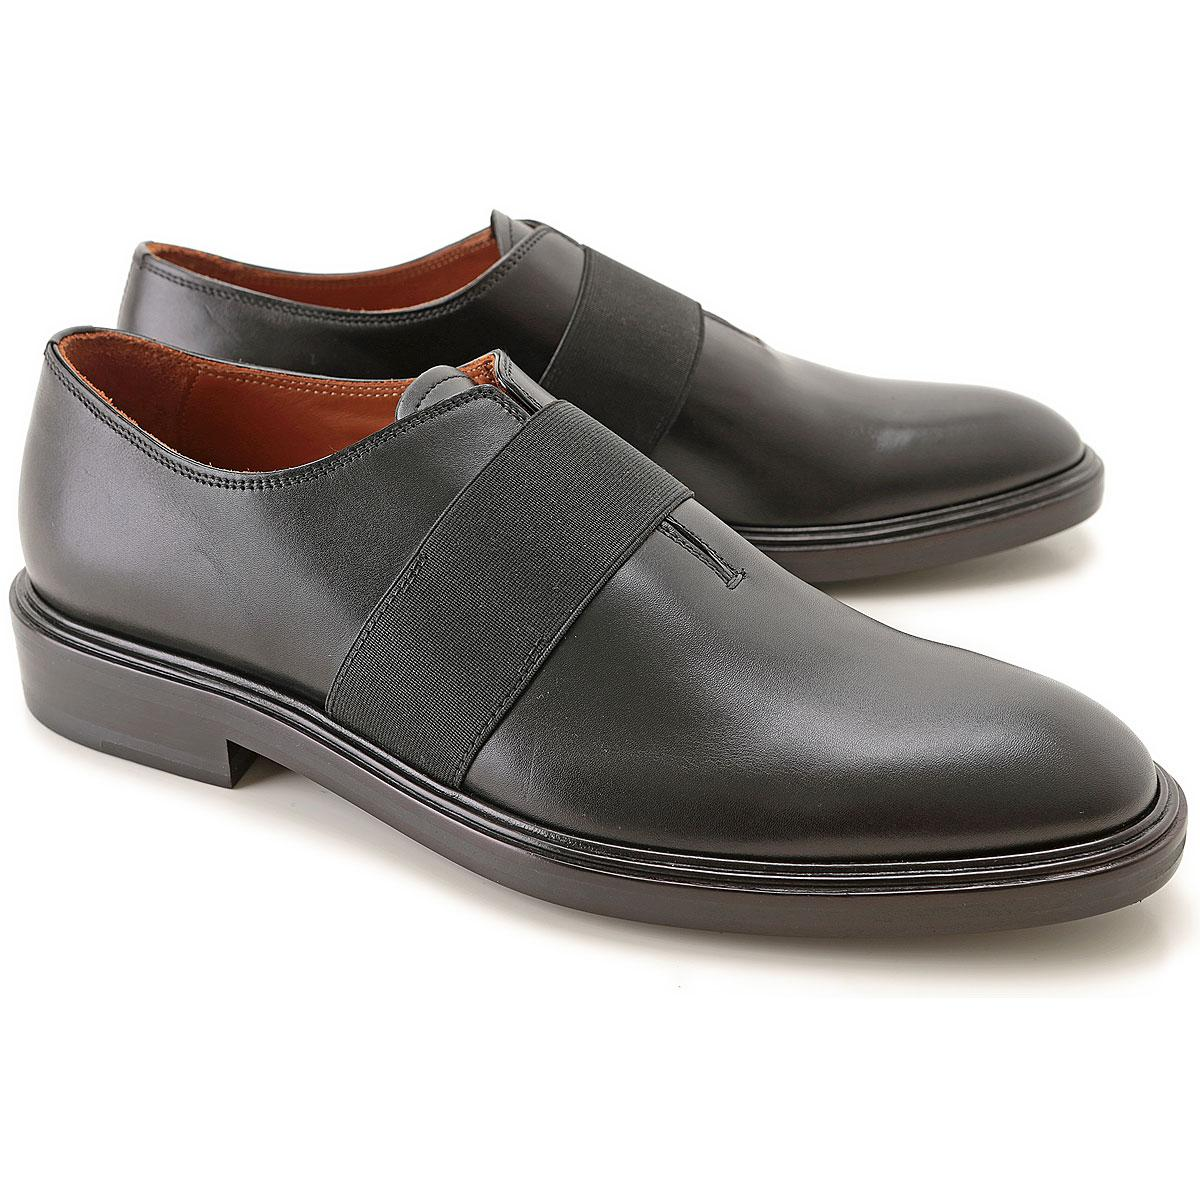 e29b1f4b79e Lyst - Givenchy Loafers For Men On Sale in Black for Men